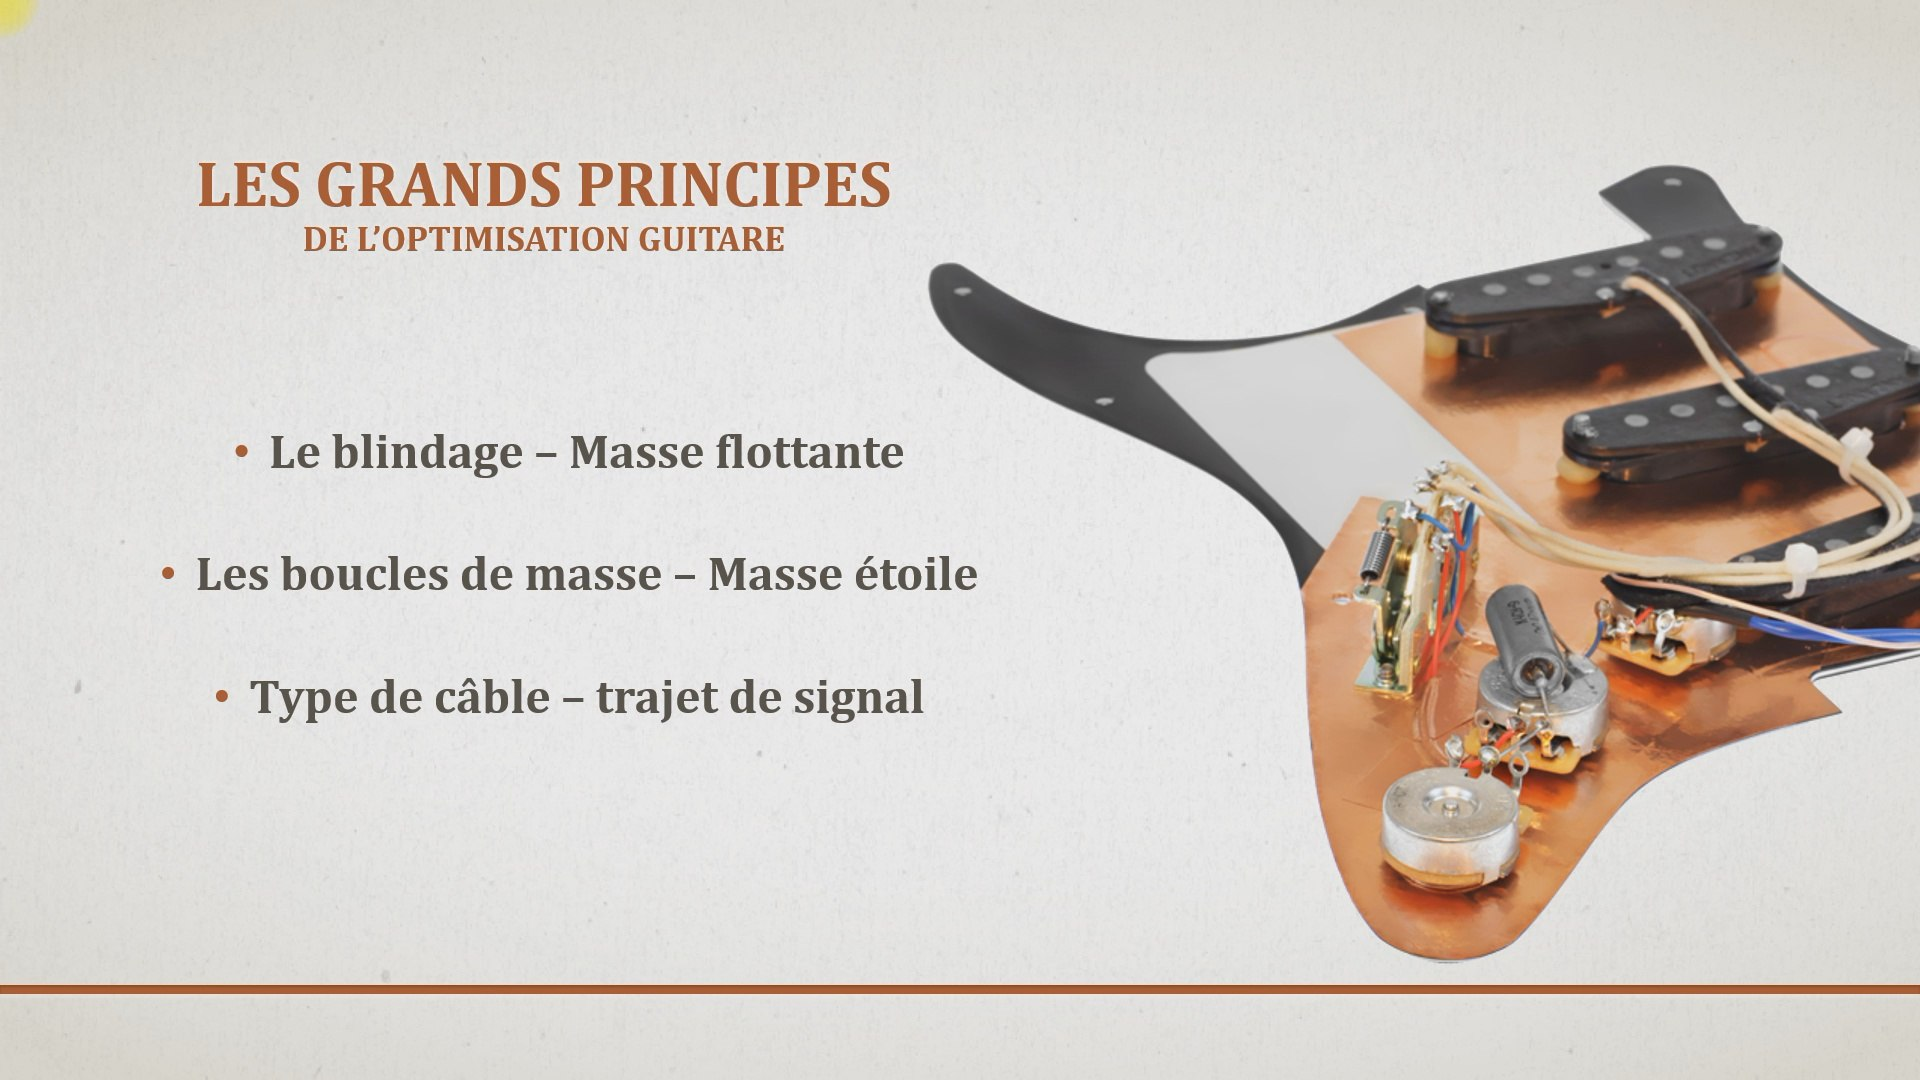 formation optimisation cablage guitare - Les grands principes